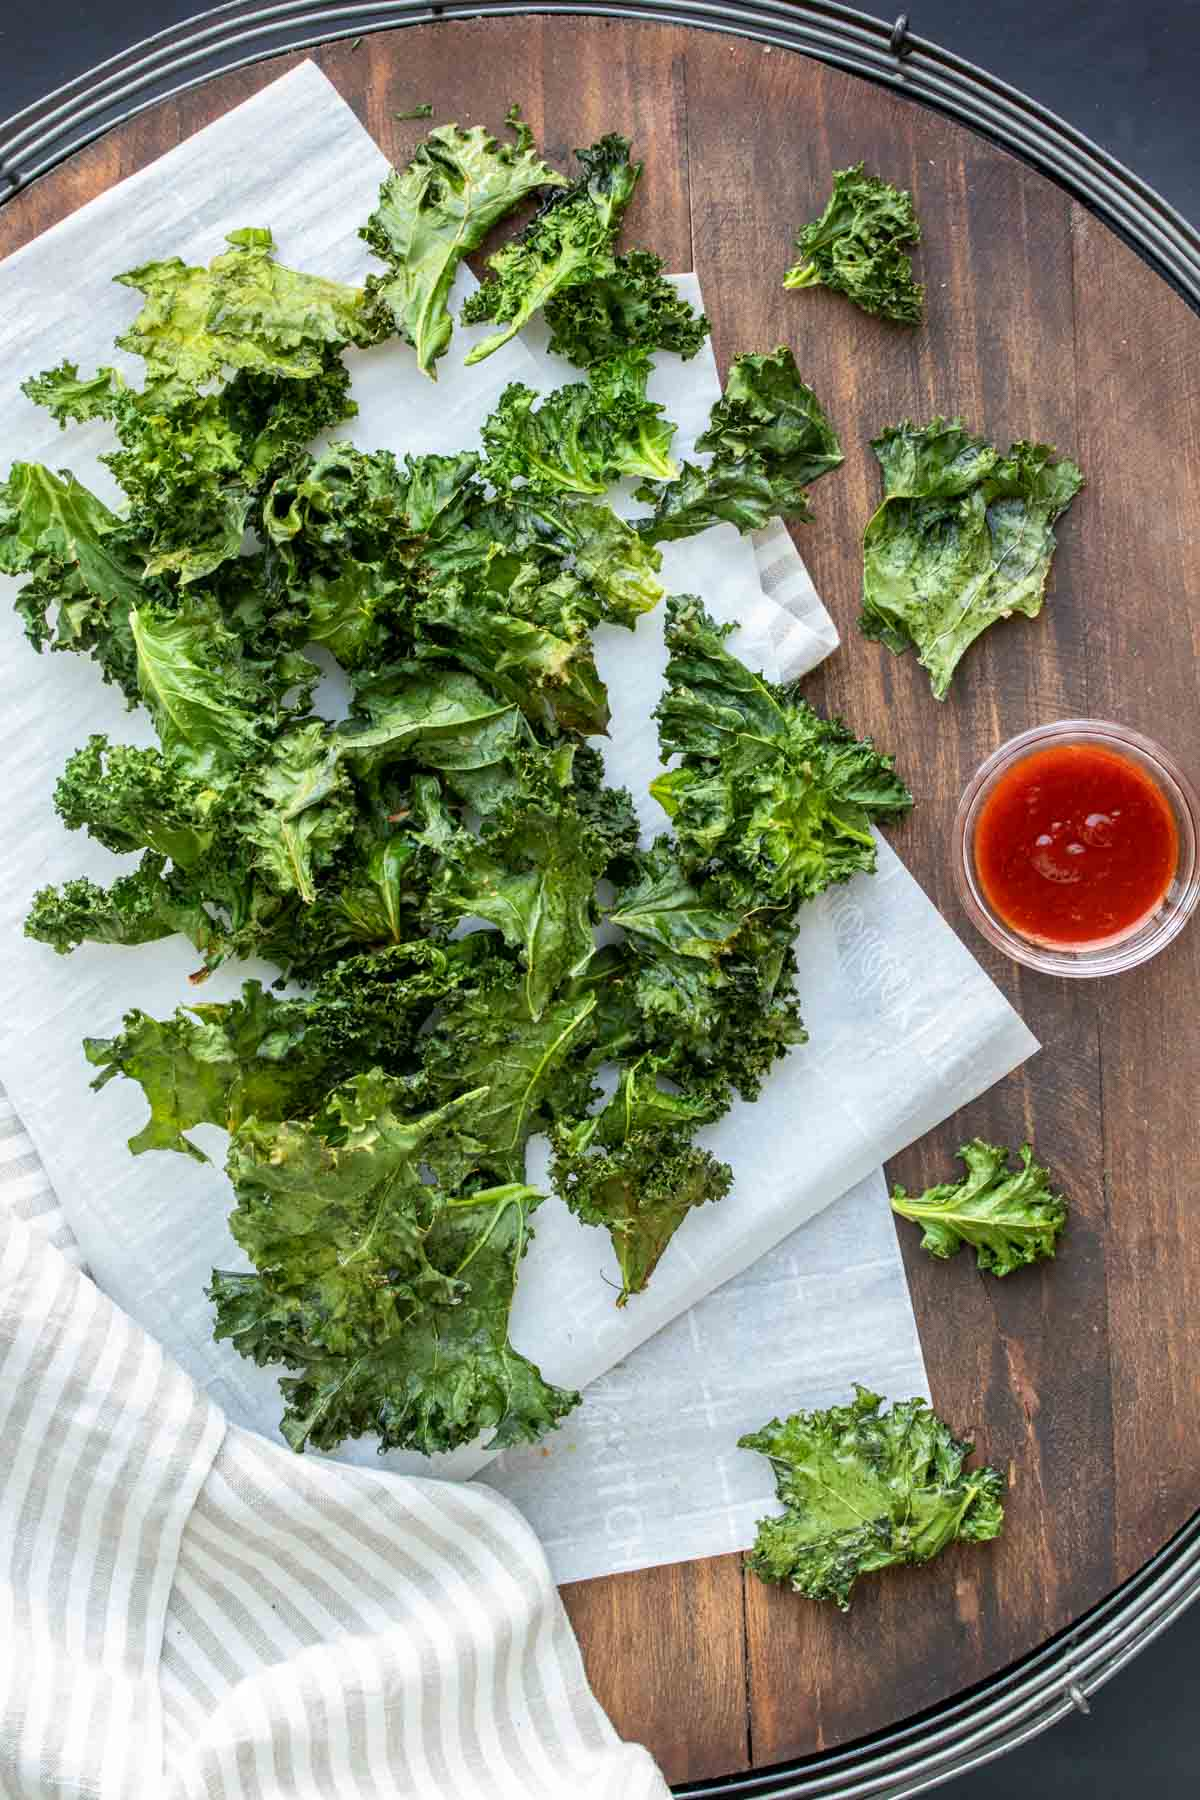 Wooden surface with parchment paper covered in a pile of kale chips